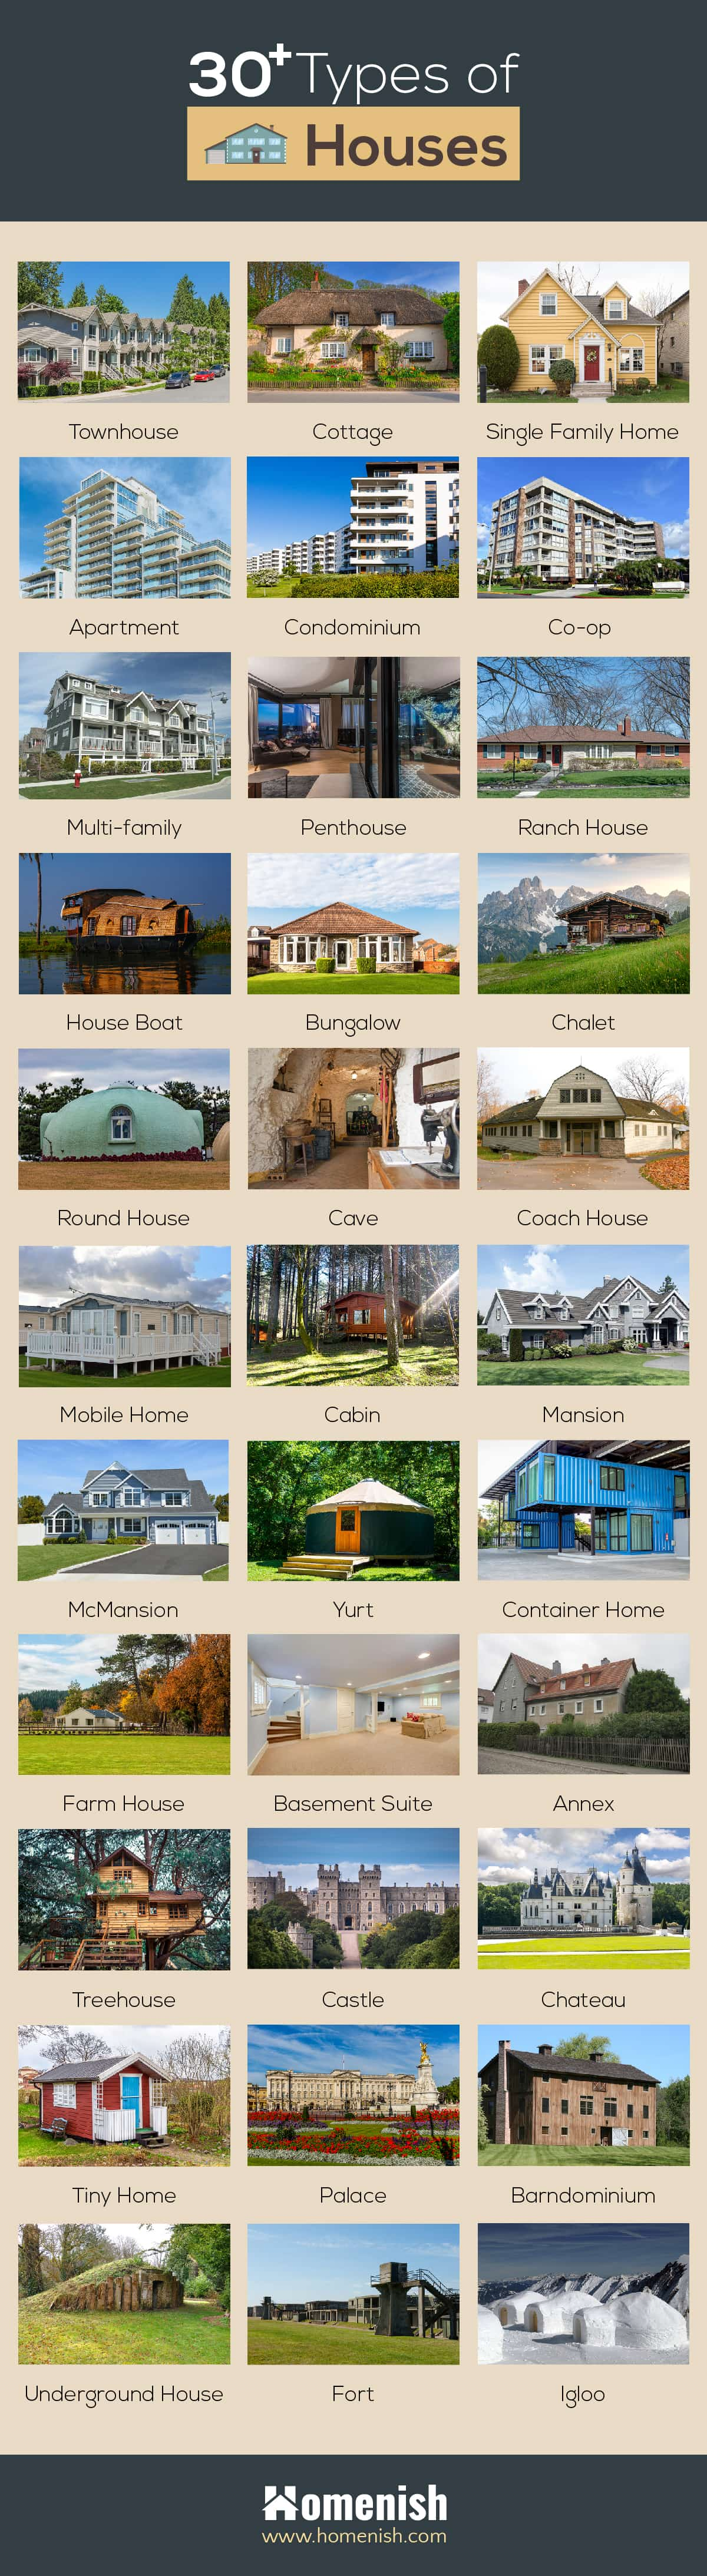 Types of Houses Infographic